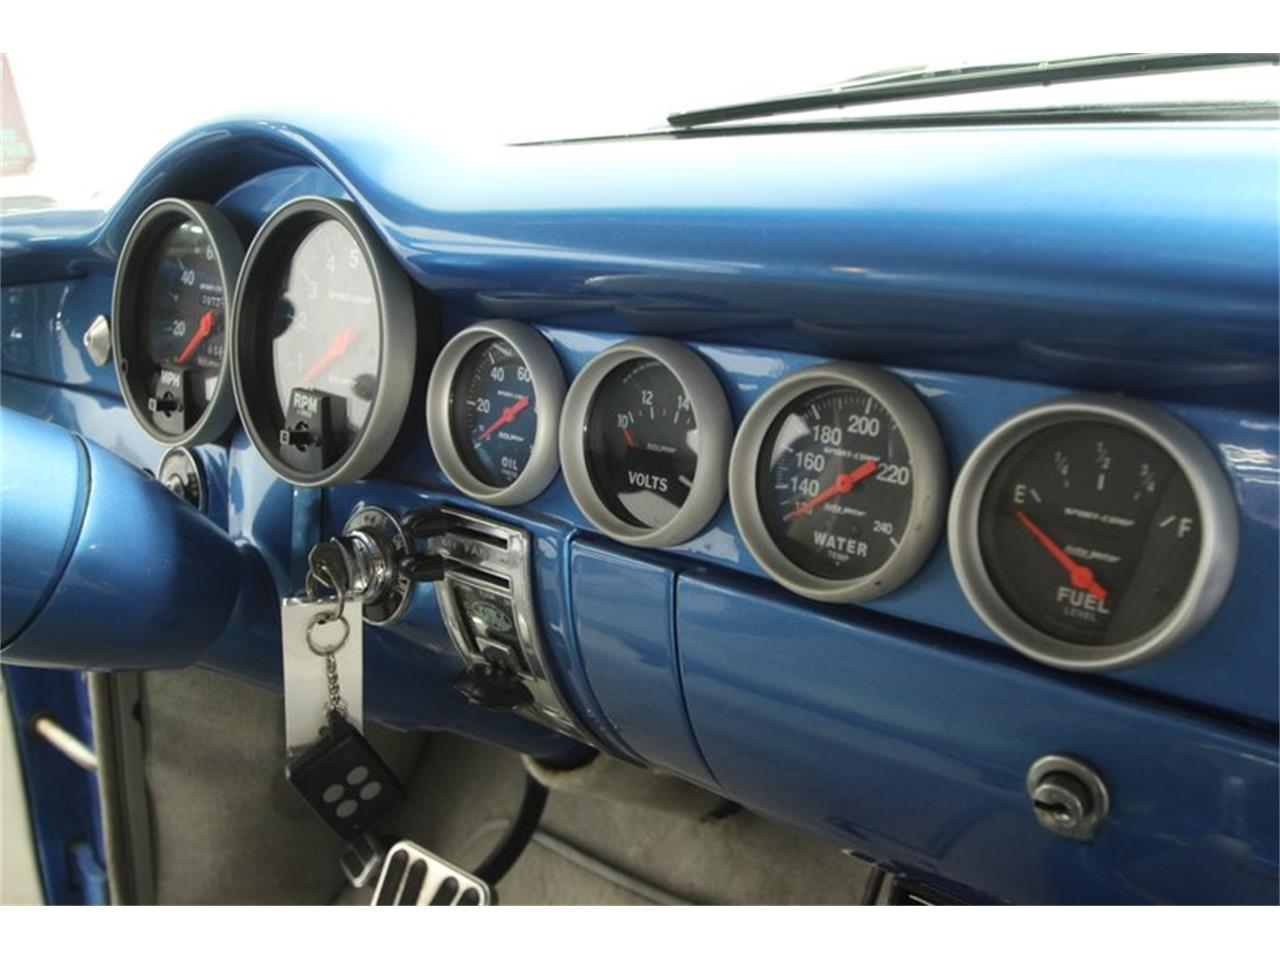 Large Picture of Classic '55 Chevrolet Nomad located in Lutz Florida - $64,995.00 Offered by Streetside Classics - Tampa - QA9W